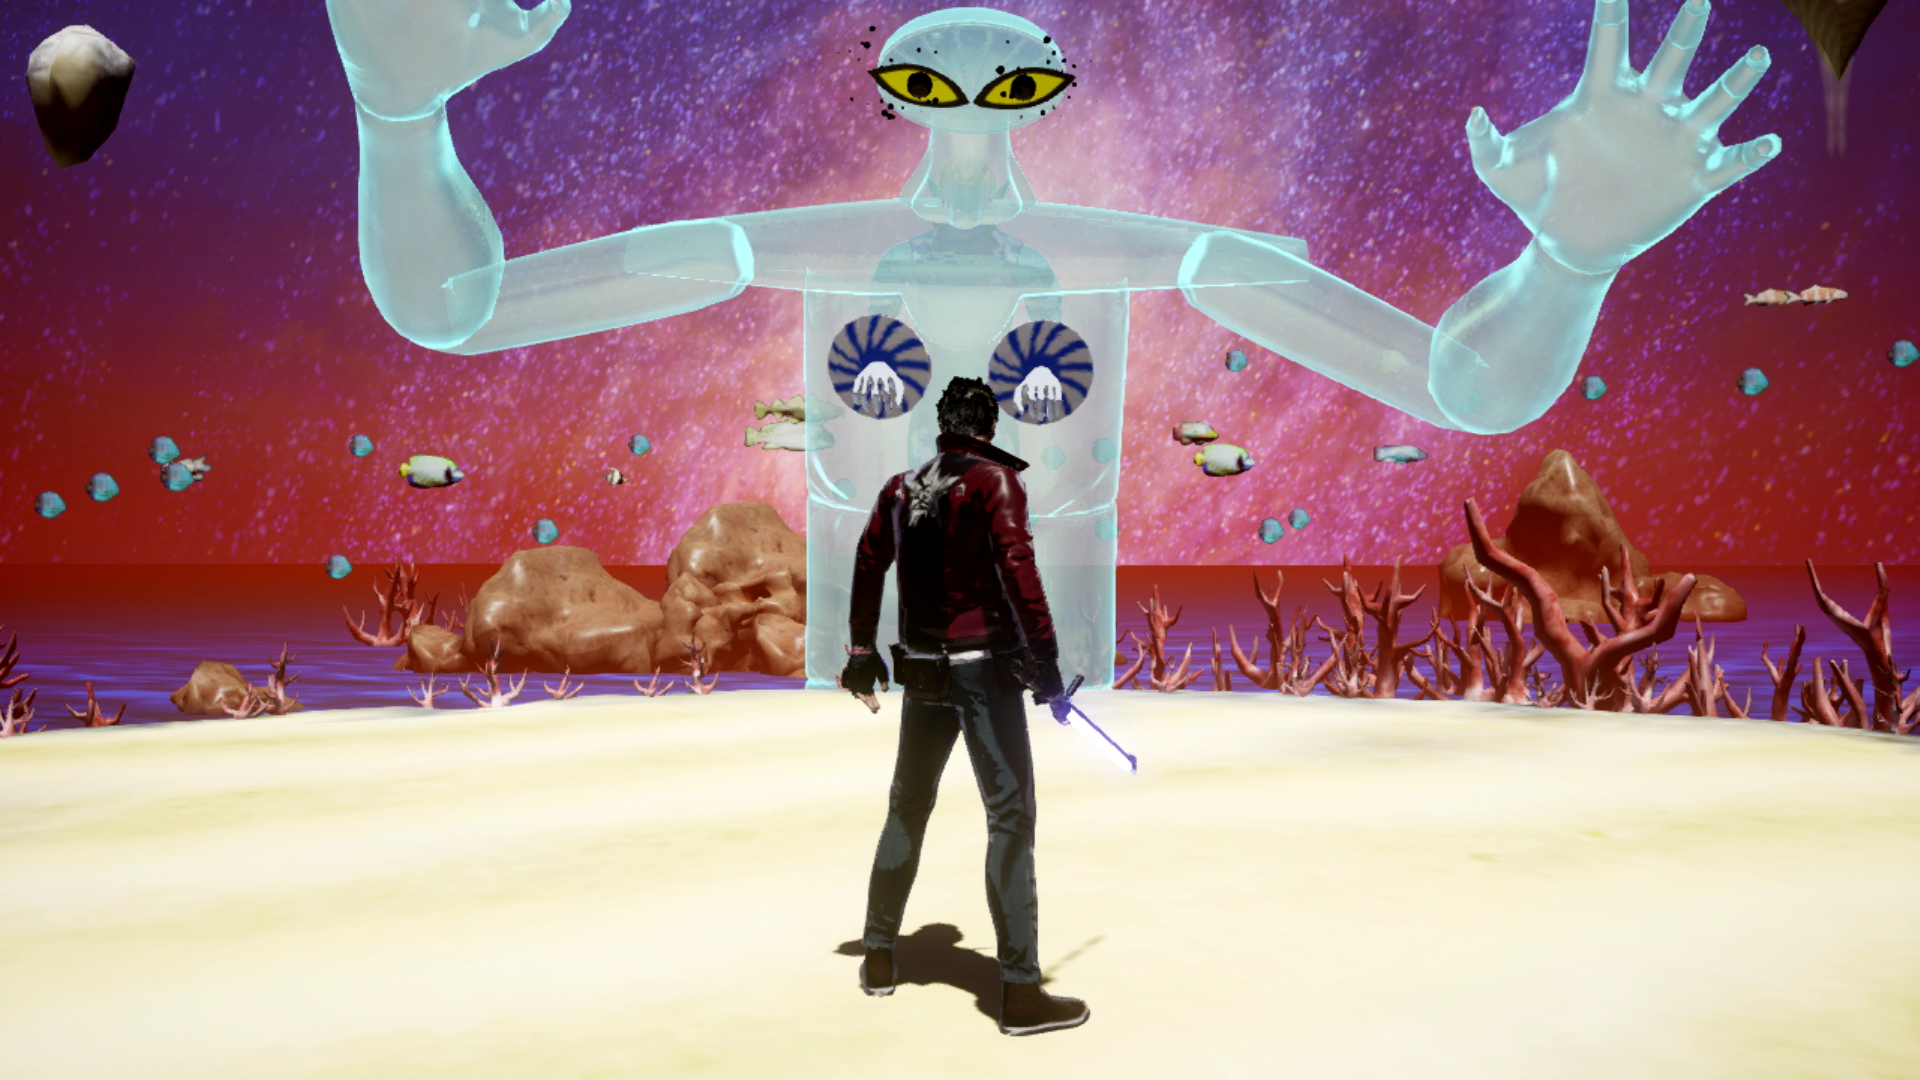 The Sonic Juice boss battle from No More Heroes 3